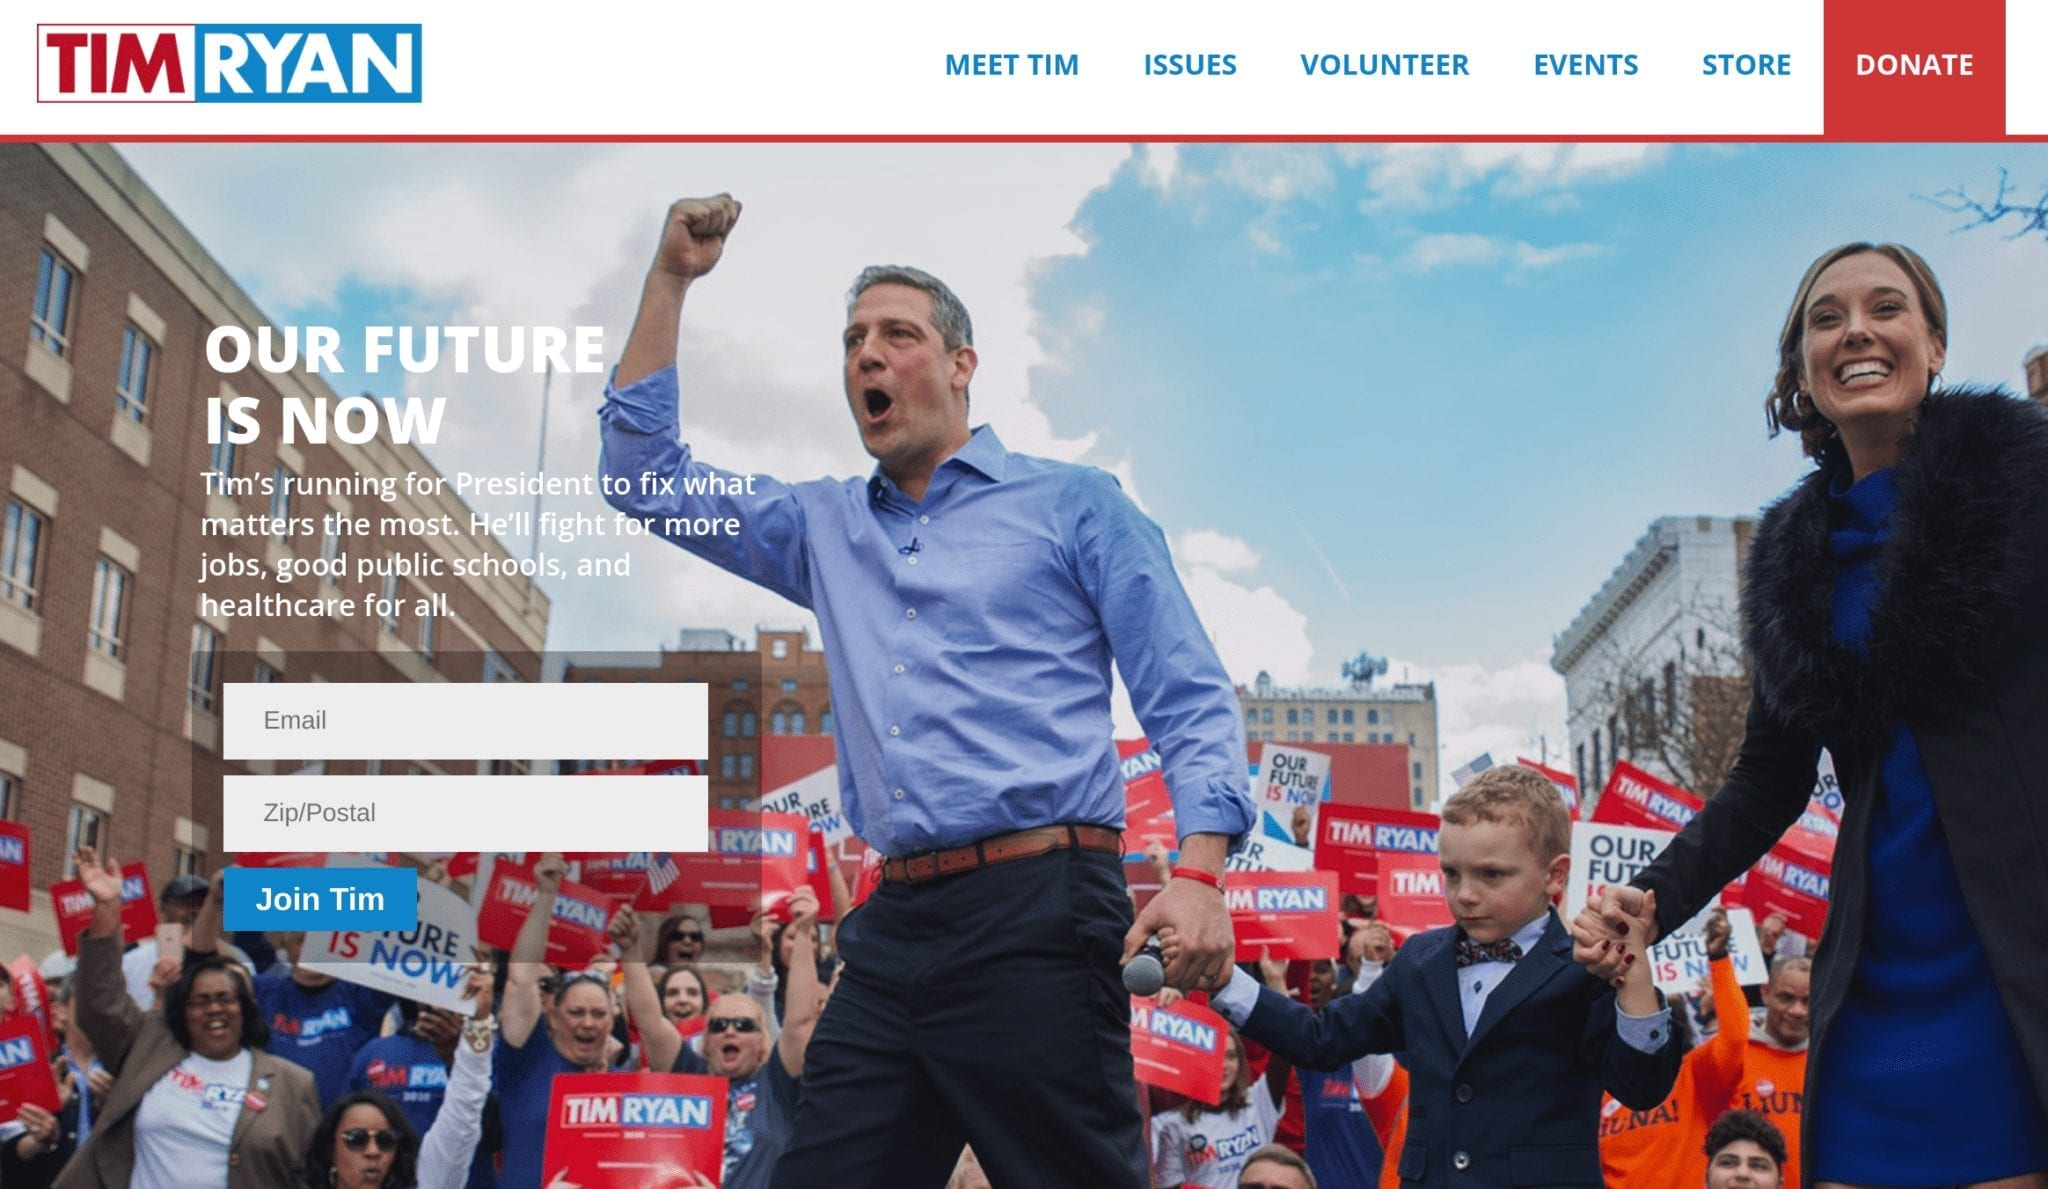 Tim Ryan 2020 campaign website